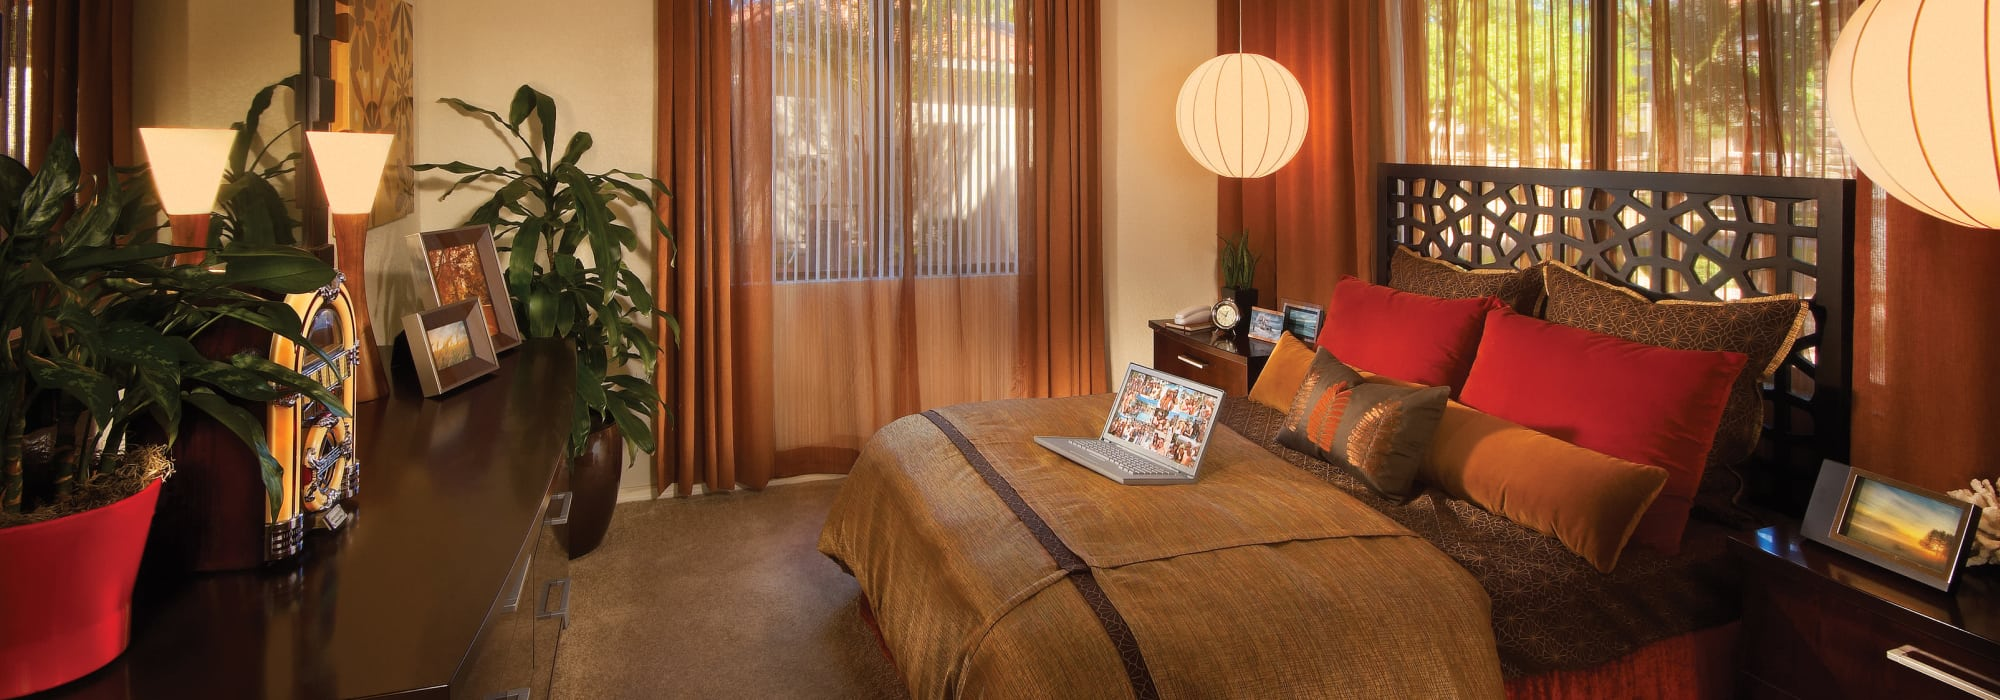 Decorated bedroom at San Marbeya in Tempe, Arizona